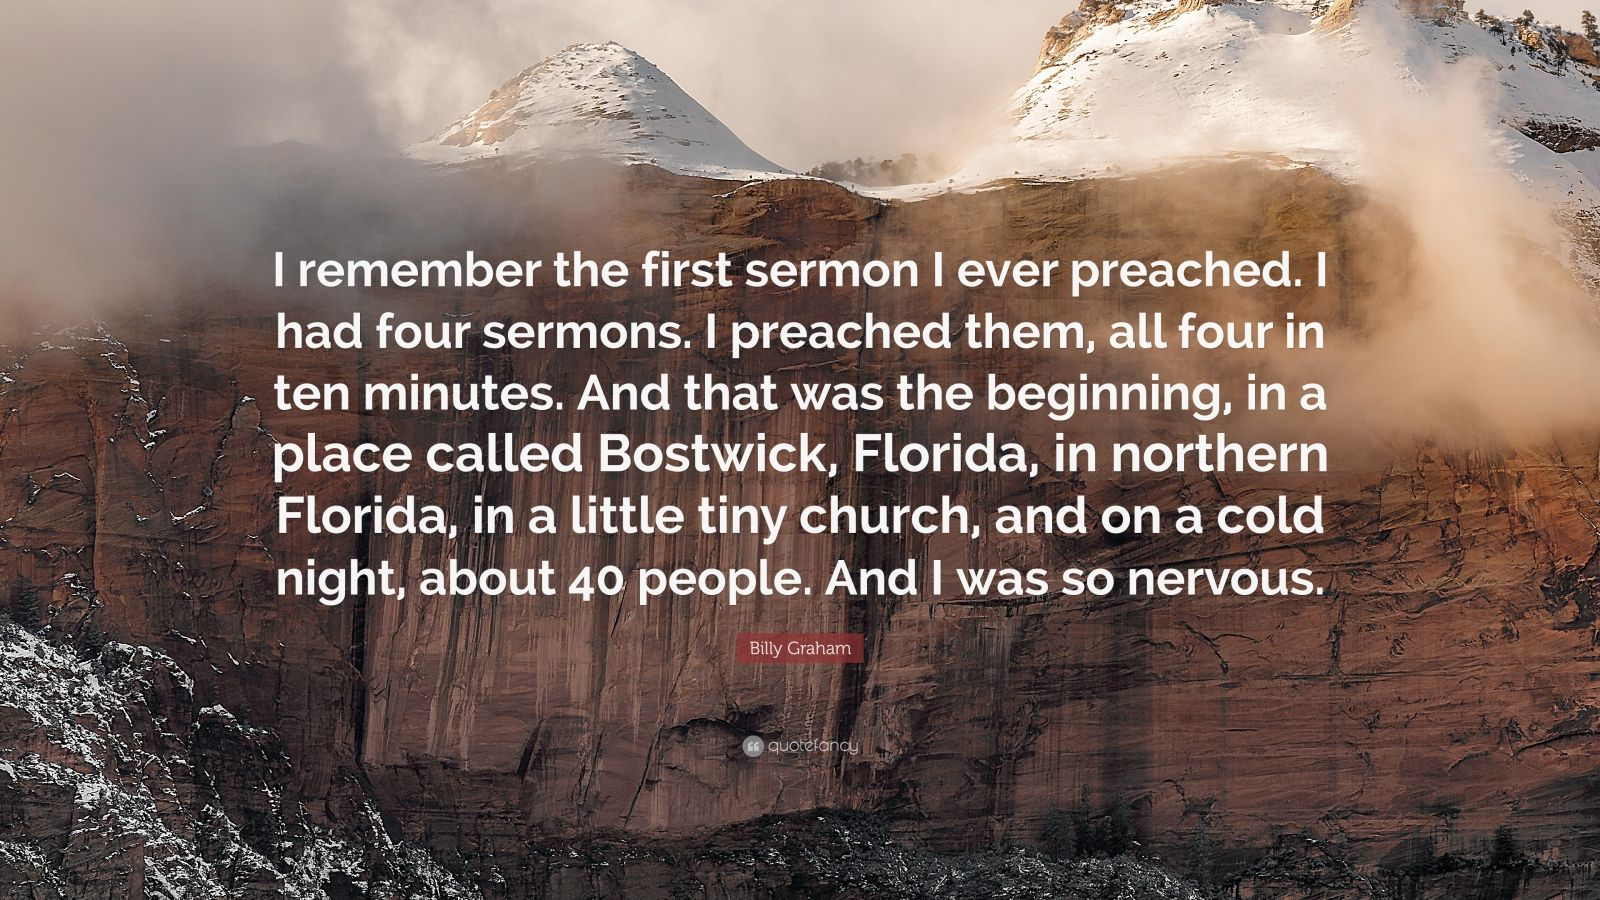 """Billy Graham Quote: """"I remember the first sermon I ever preached. I had four sermons. I preached them, all four in ten minutes. And that was the beginning, in a place called Bostwick, Florida, in northern Florida, in a little tiny church, and on a cold night, about 40 people. And I was so nervous."""""""